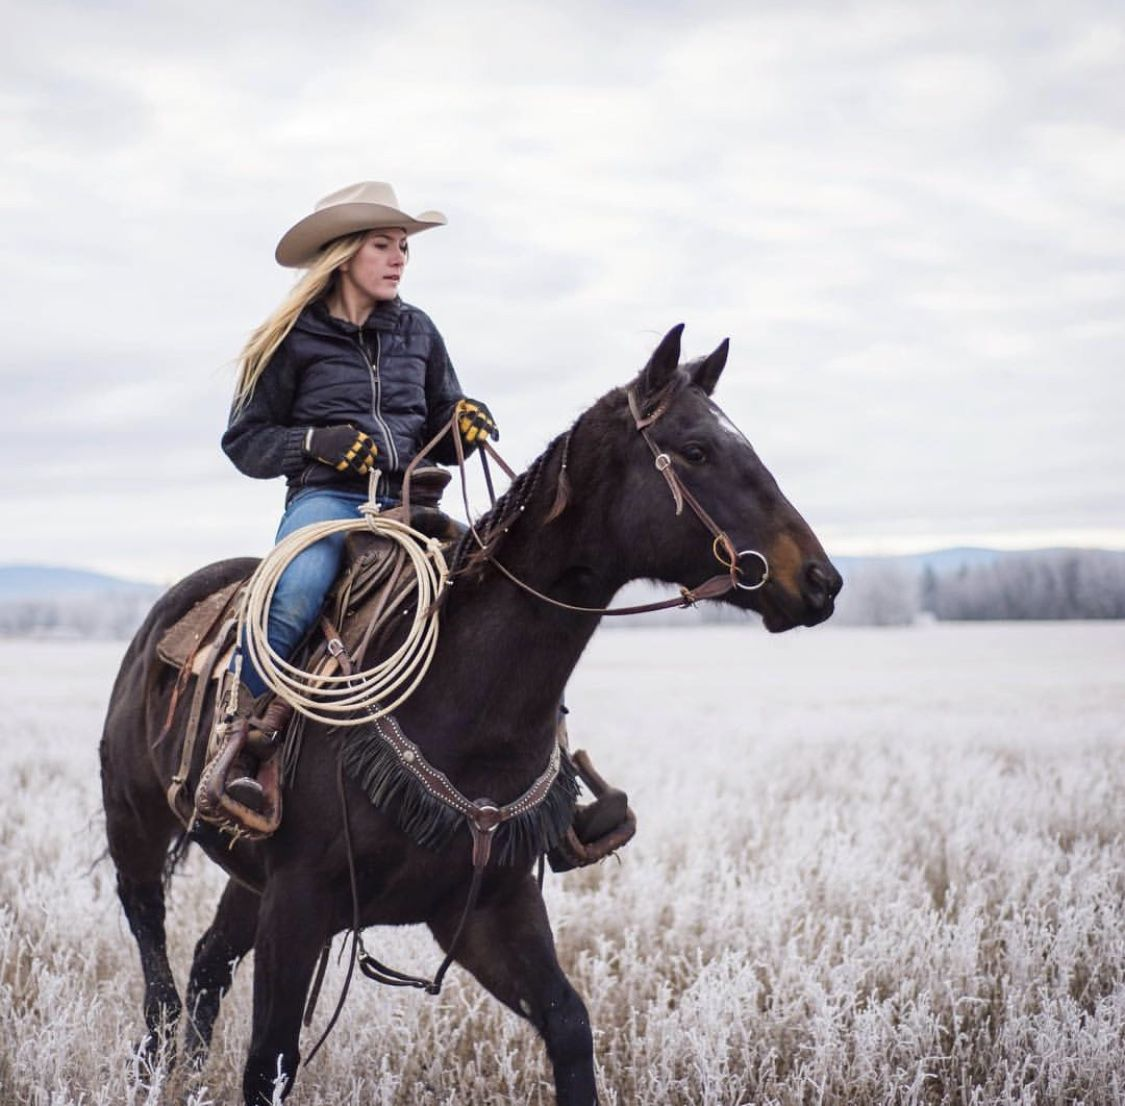 I'm that girl in God's new world. I will travel by horseback EVERYWHERE #cowboysandcowgirls